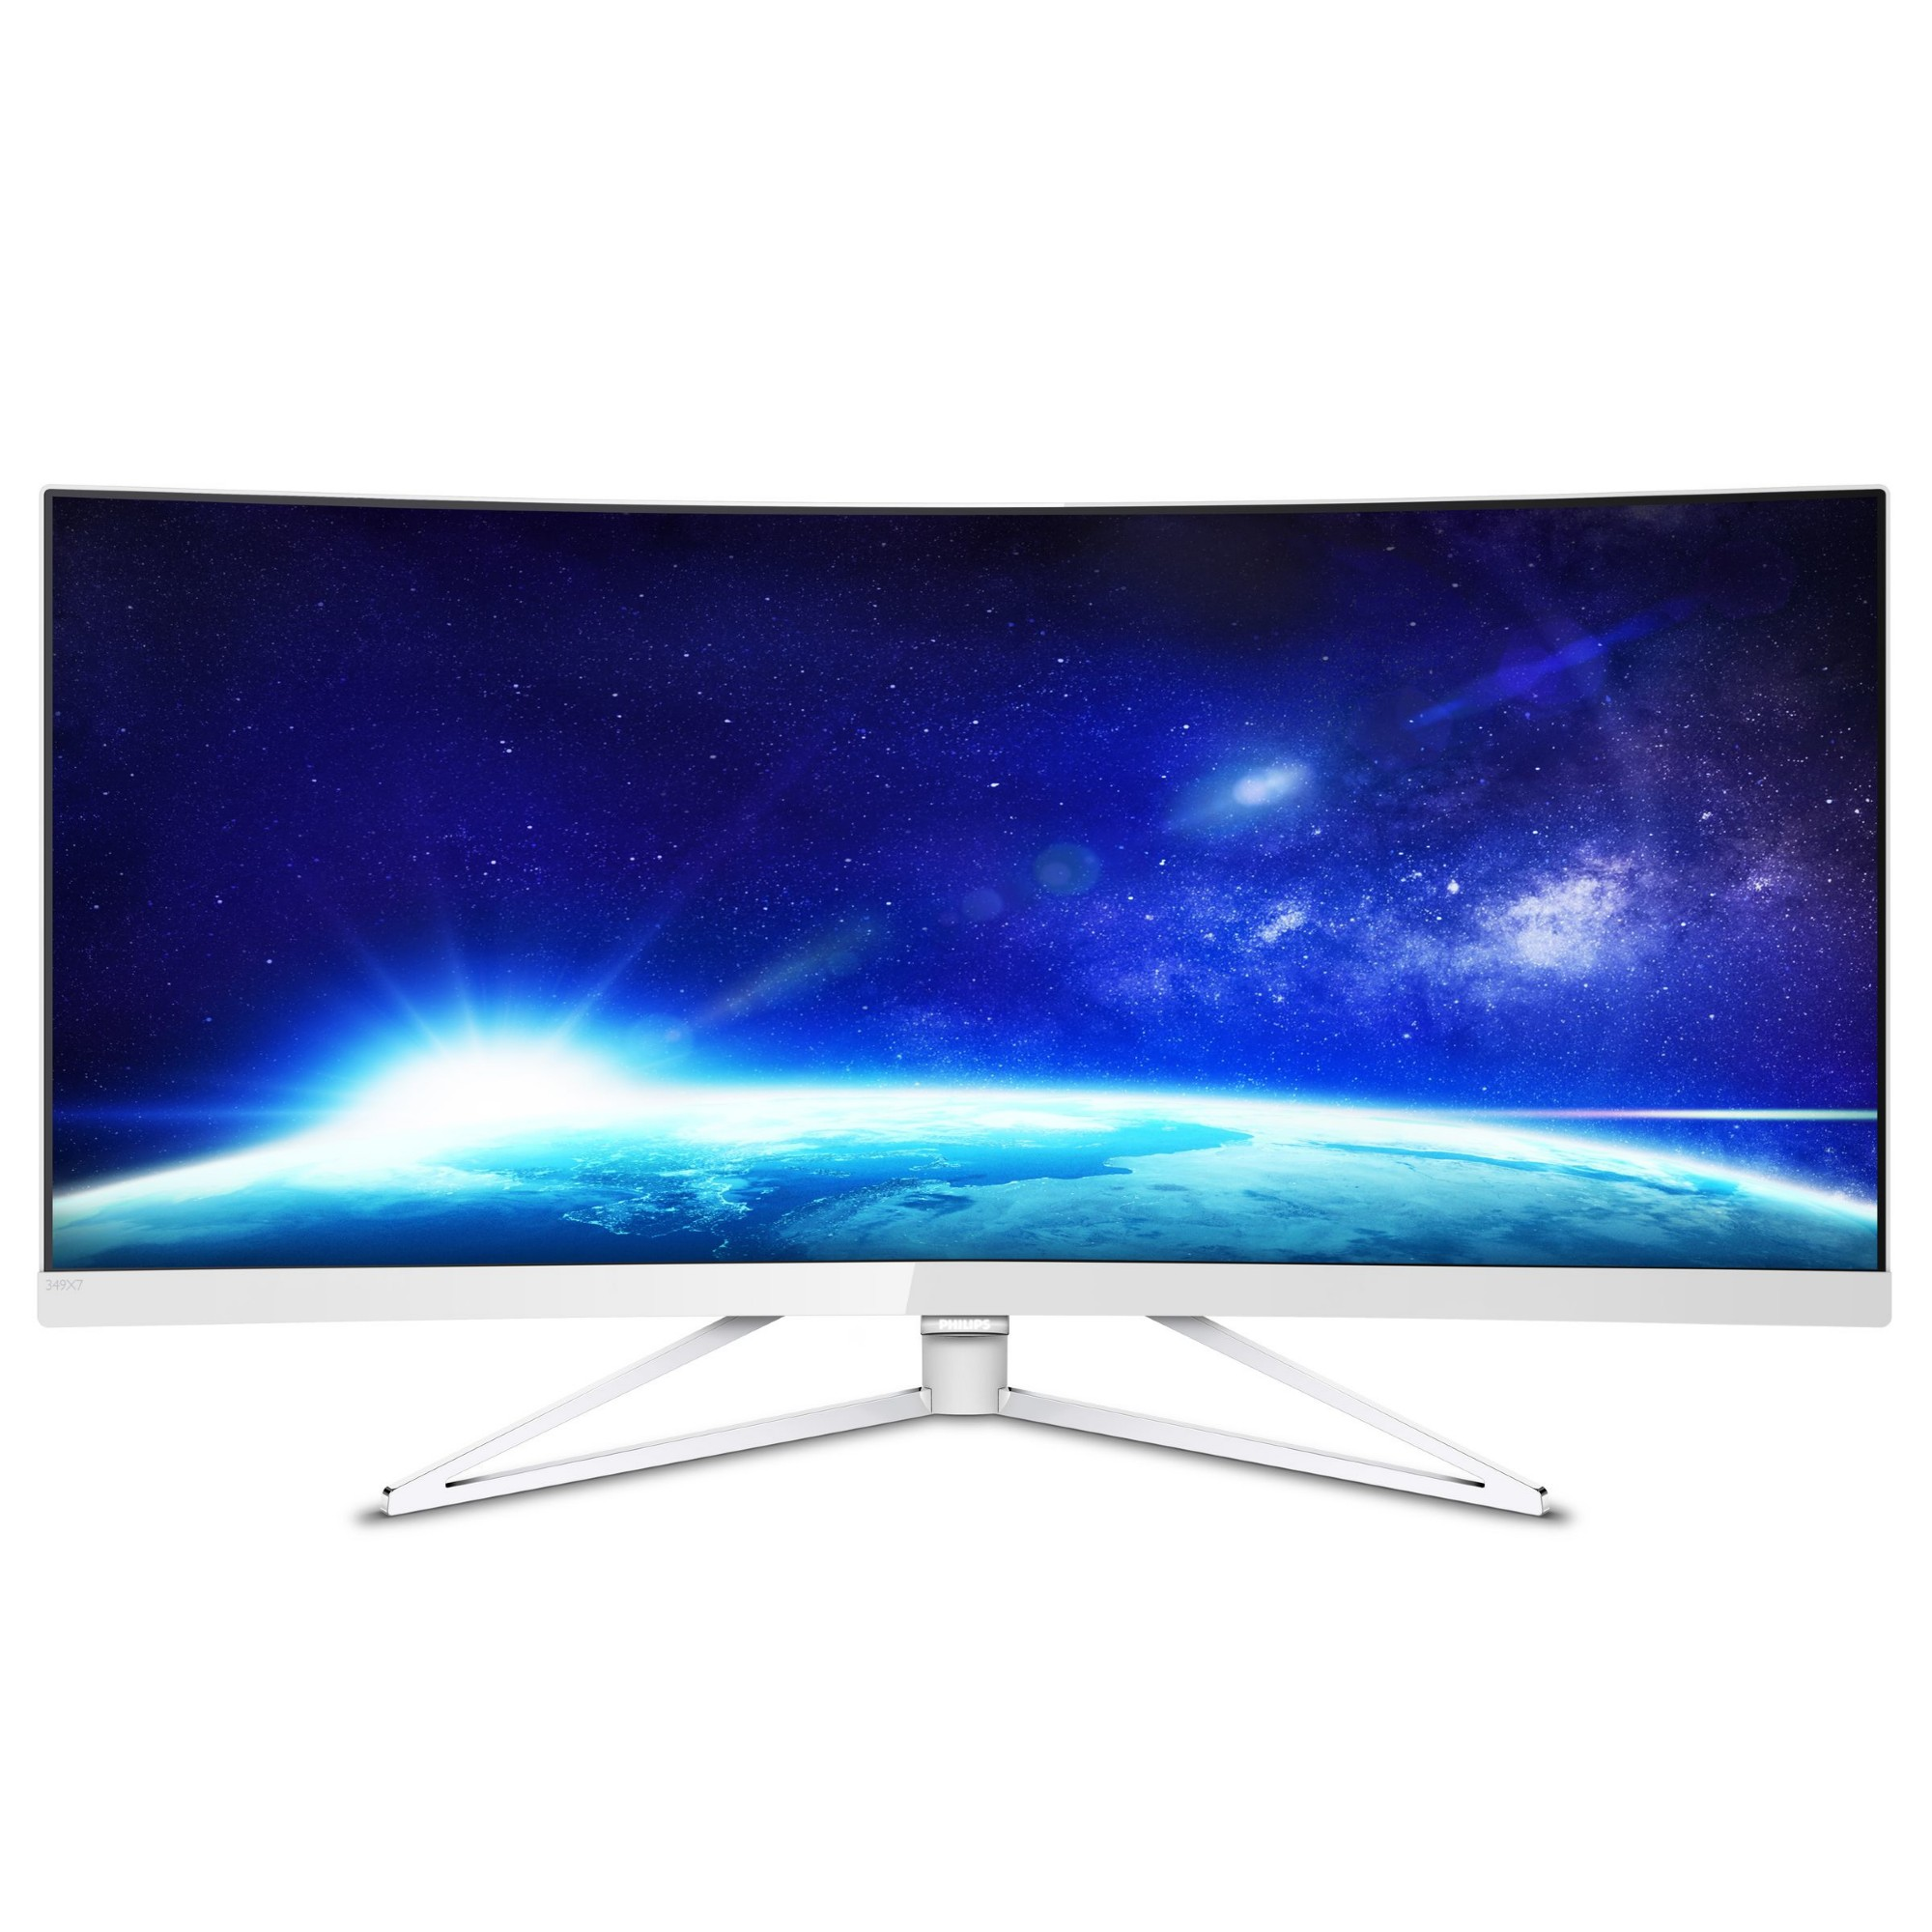 Philips Brilliance Curved UltraWide LCD Display 349X7FJEW